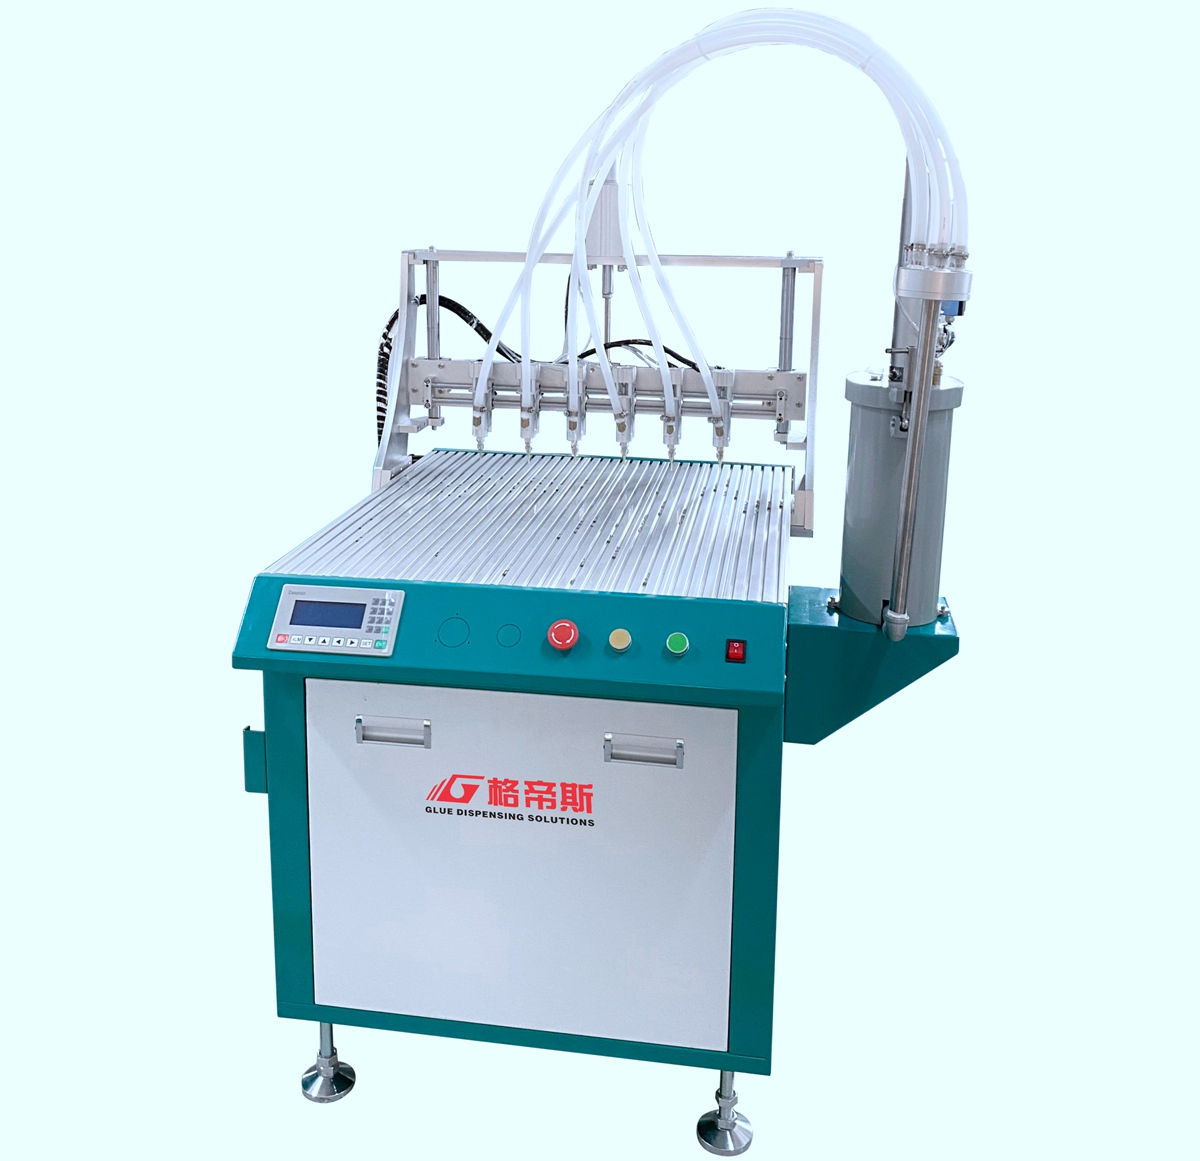 HTD-600 Glue Dispensing Machine for Panel Light